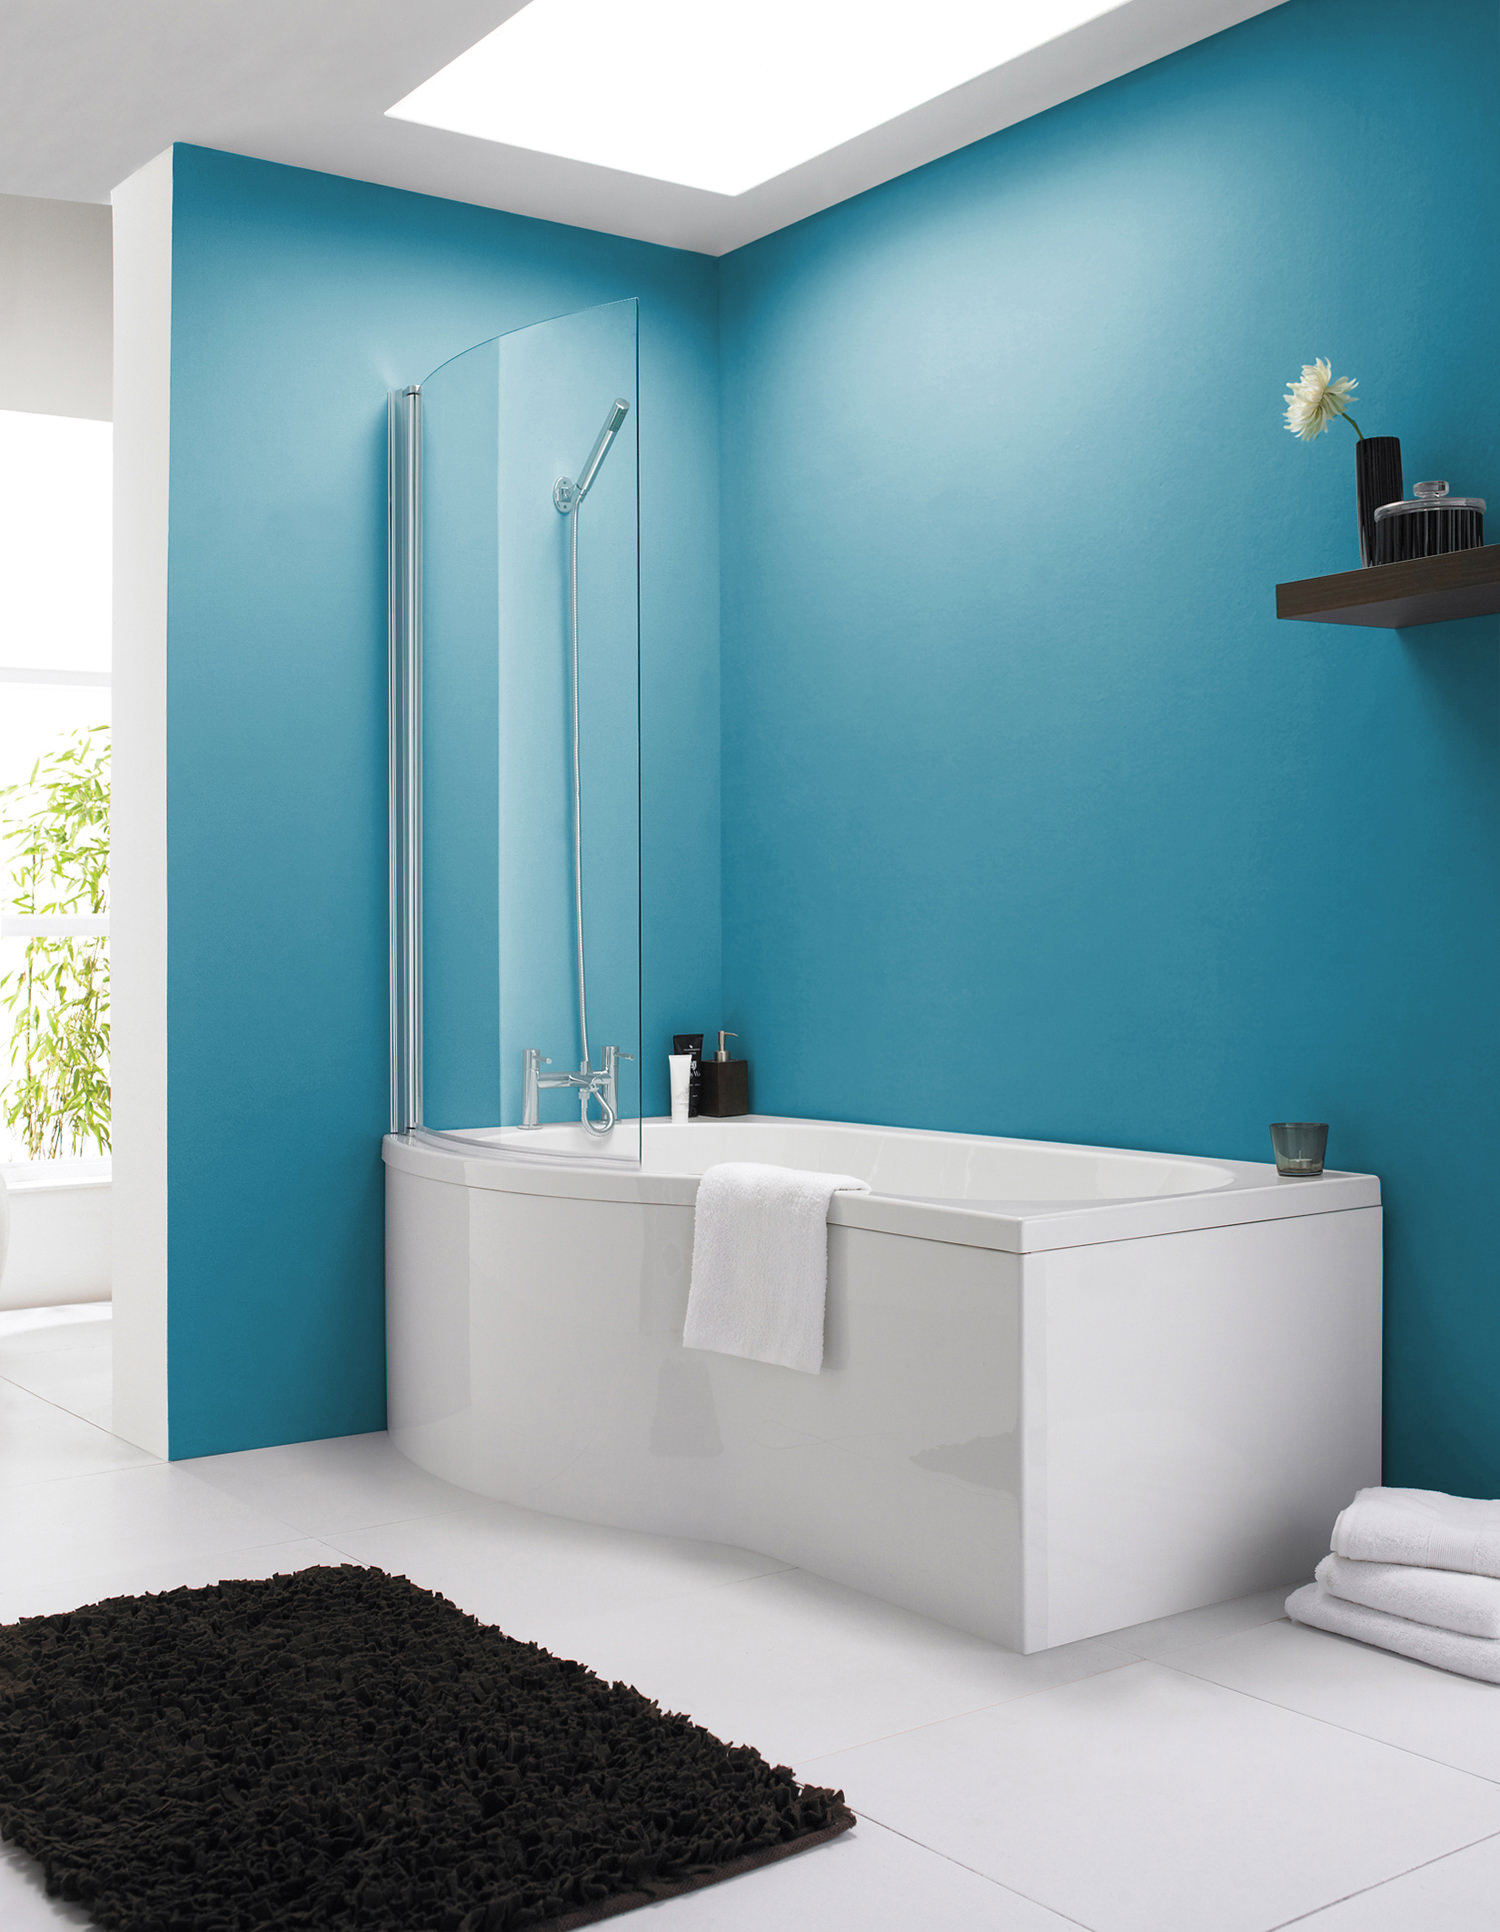 #1C4F5D Lauren 1500mm Curved Shower Bath With Screen And Side  2831 petite salle de bain turquoise 1500x1932 px @ aertt.com